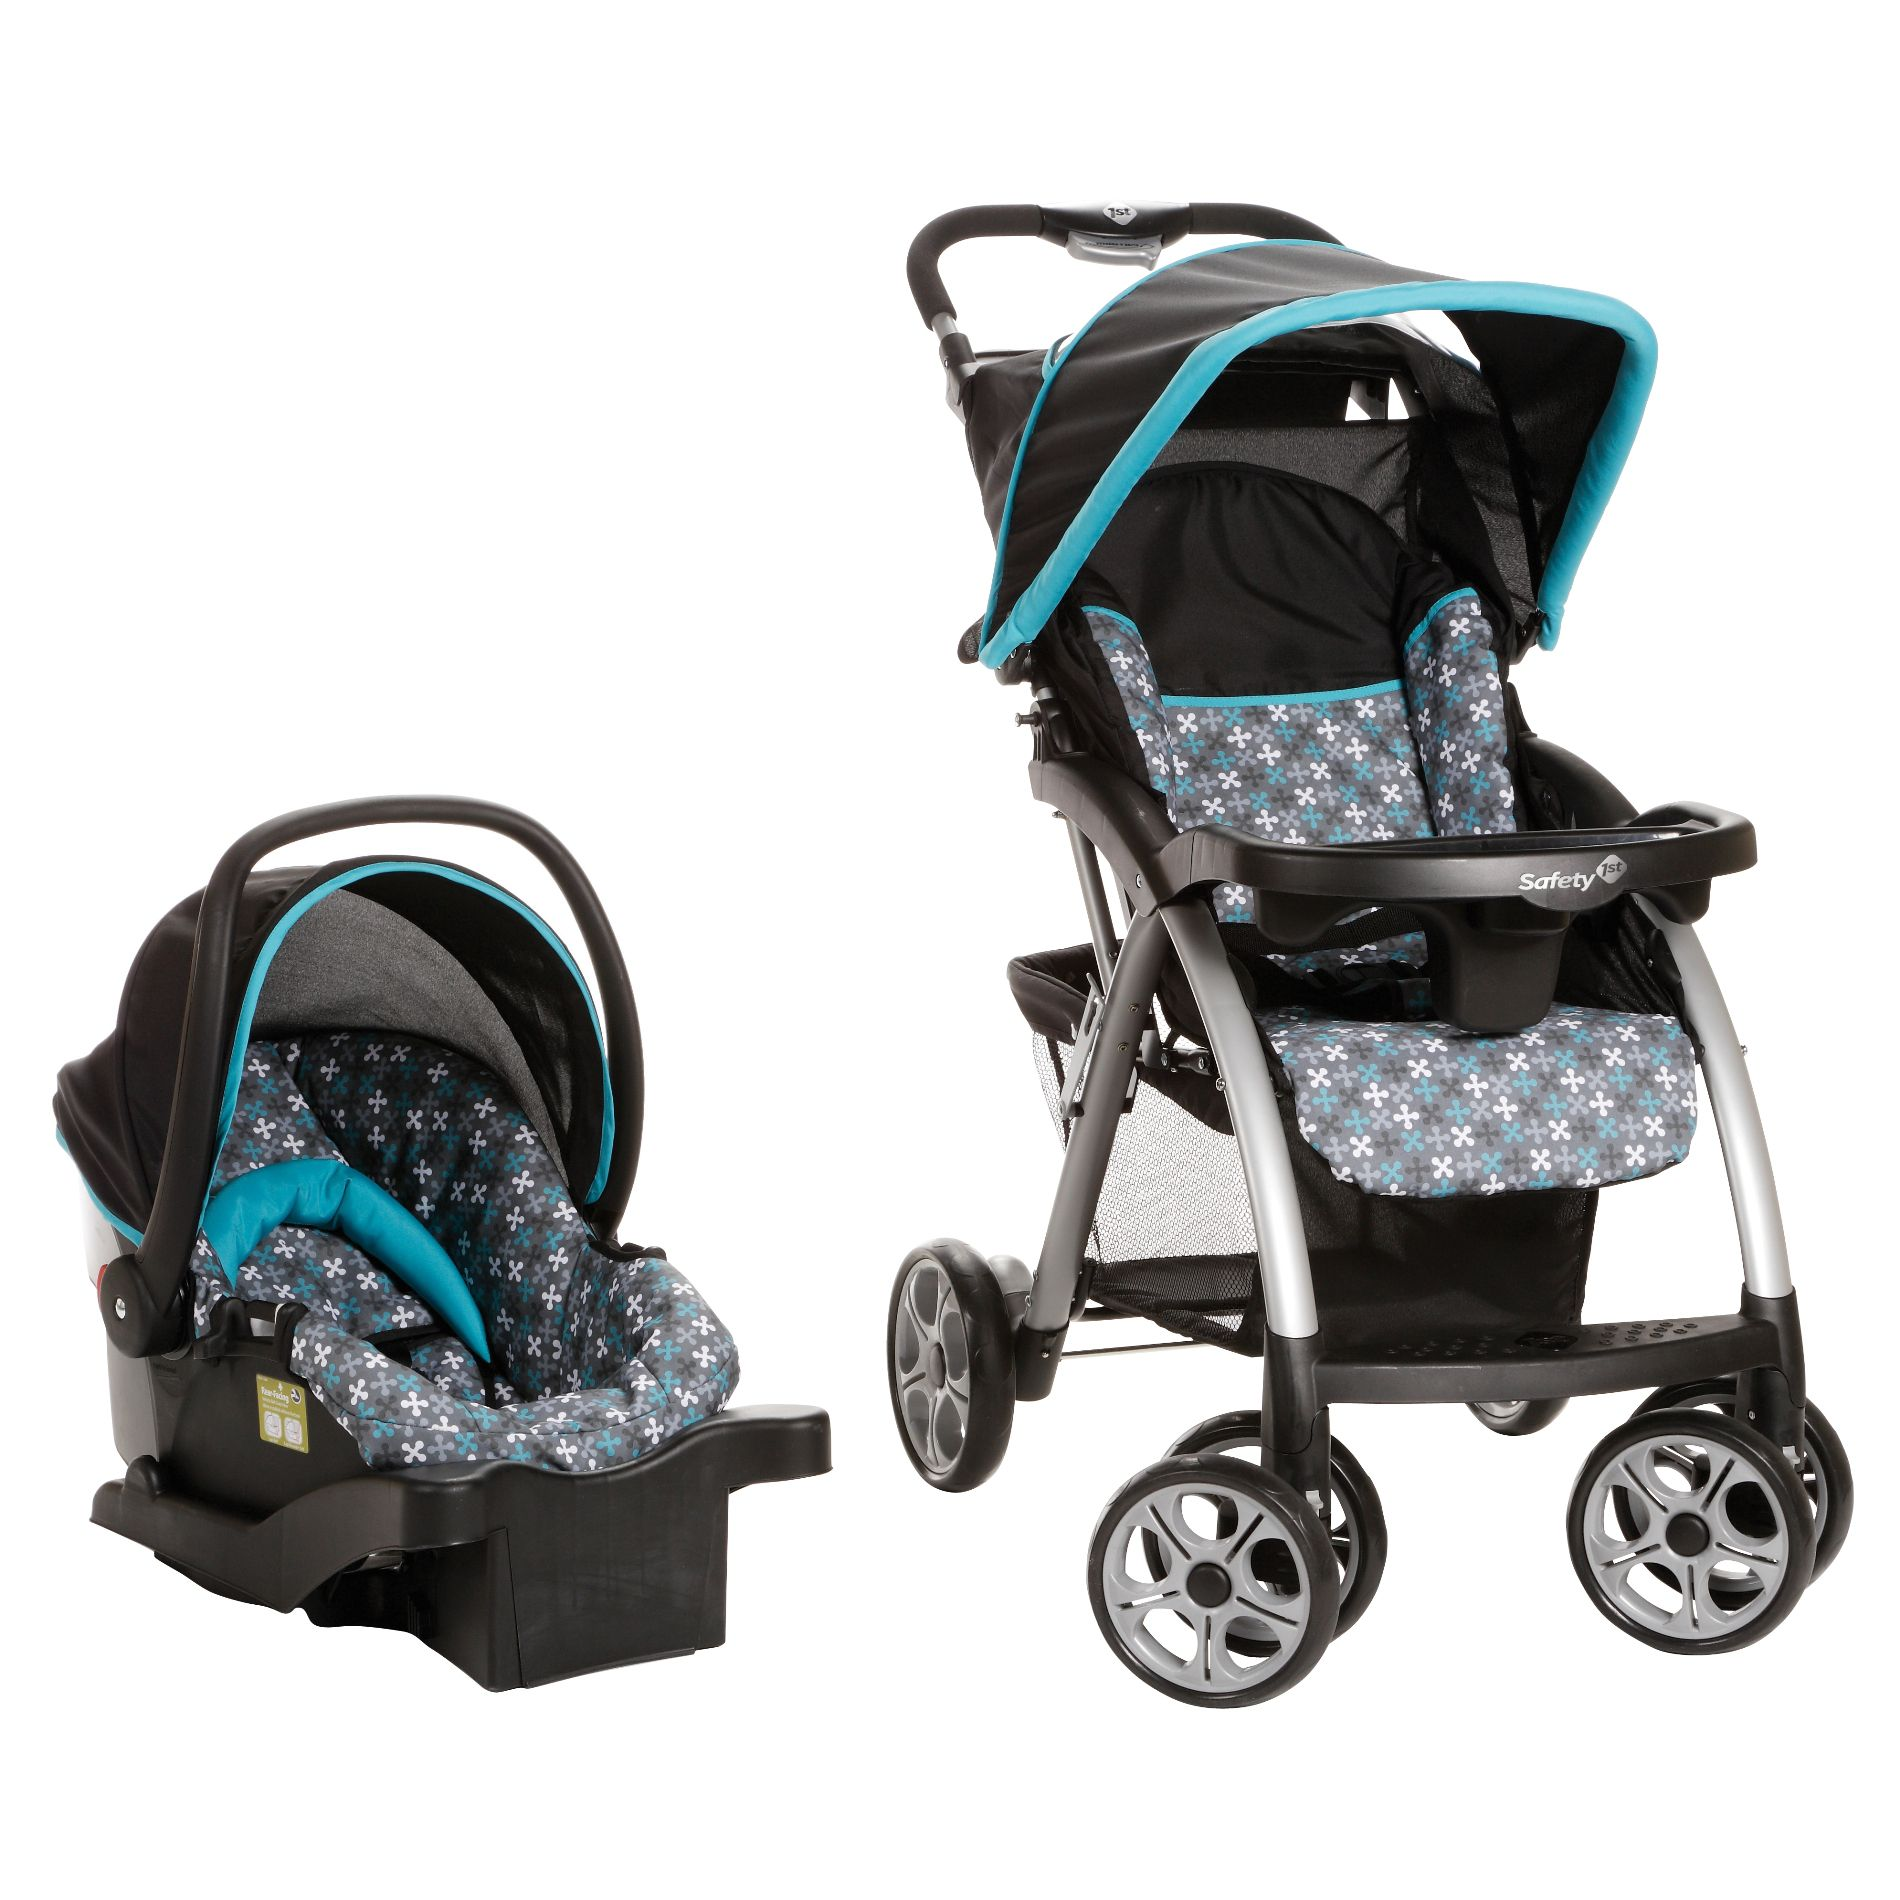 Safety 1st Saunter Stroller And Travel System Jumping Jacks